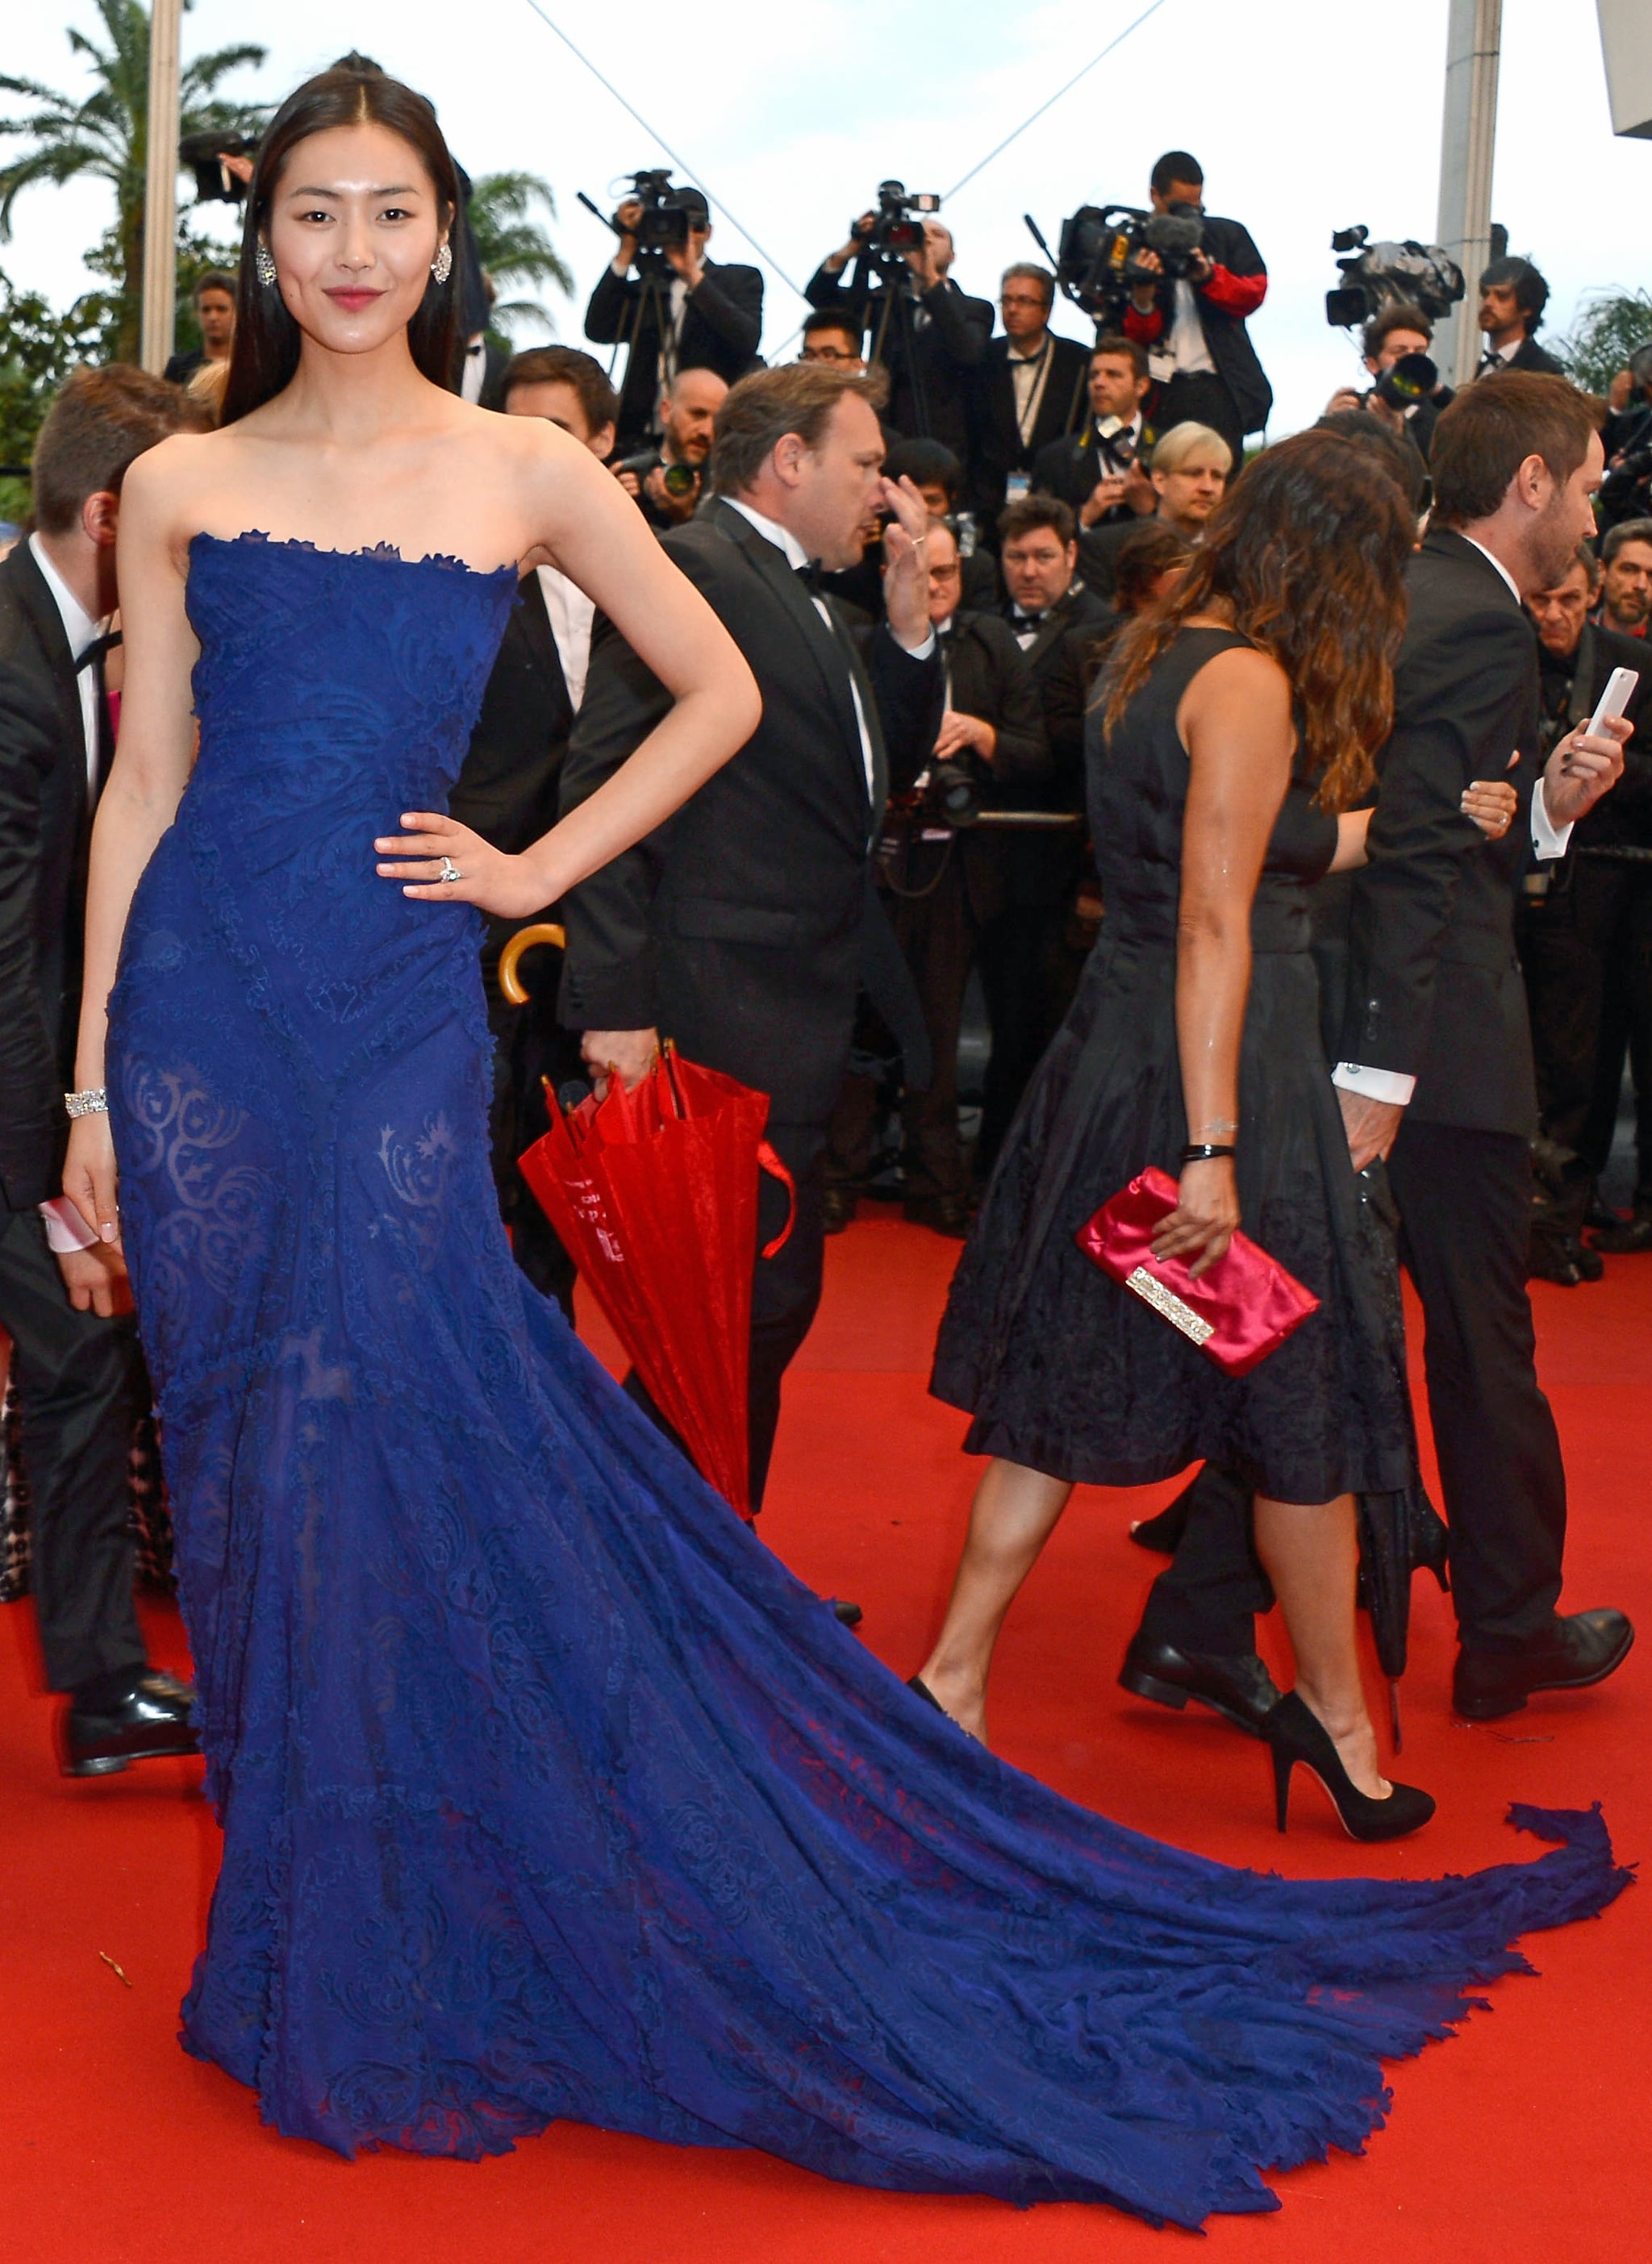 Liu Wen wore Roberto Cavalli at the premiere of All Is Lost.